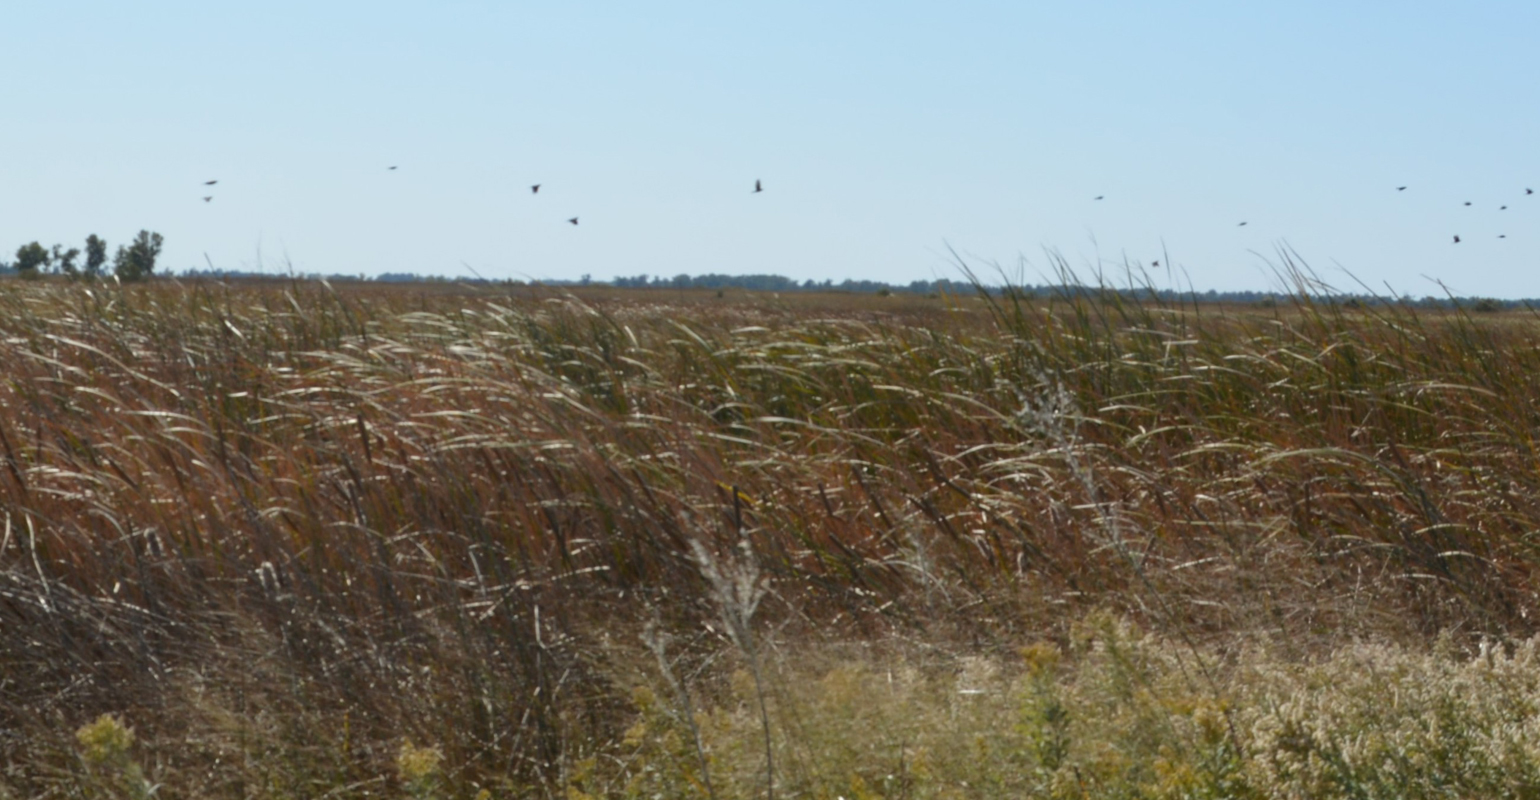 Birds flying over the grass-covered sand dunes that make up the land of Quivira National Wildlife Refuge